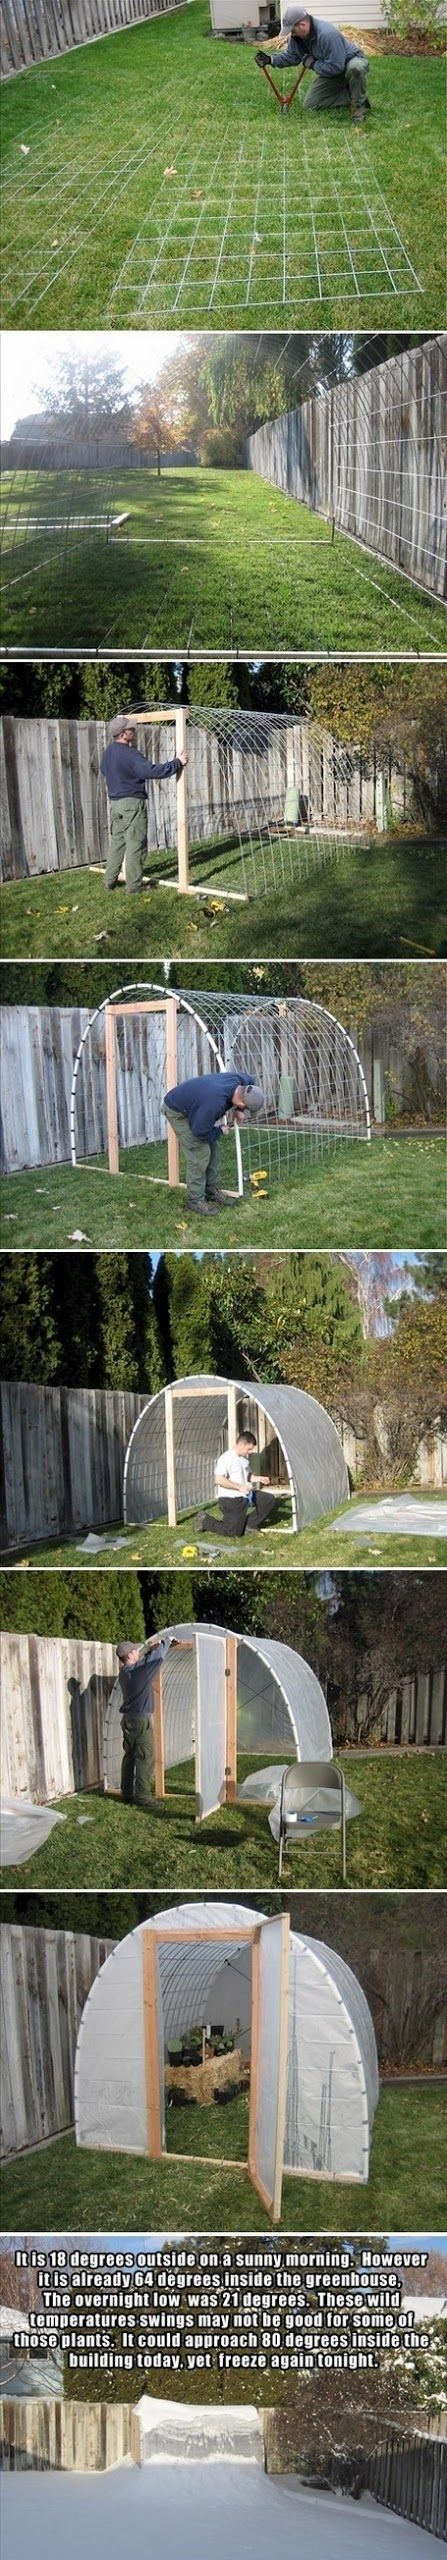 Chicken Coop - Make Your Own Greenhouse, DIY Greenhouse from PVC and cattle panel Building a chicken coop does not have to be tricky nor does it have to set you back a ton of scratch.